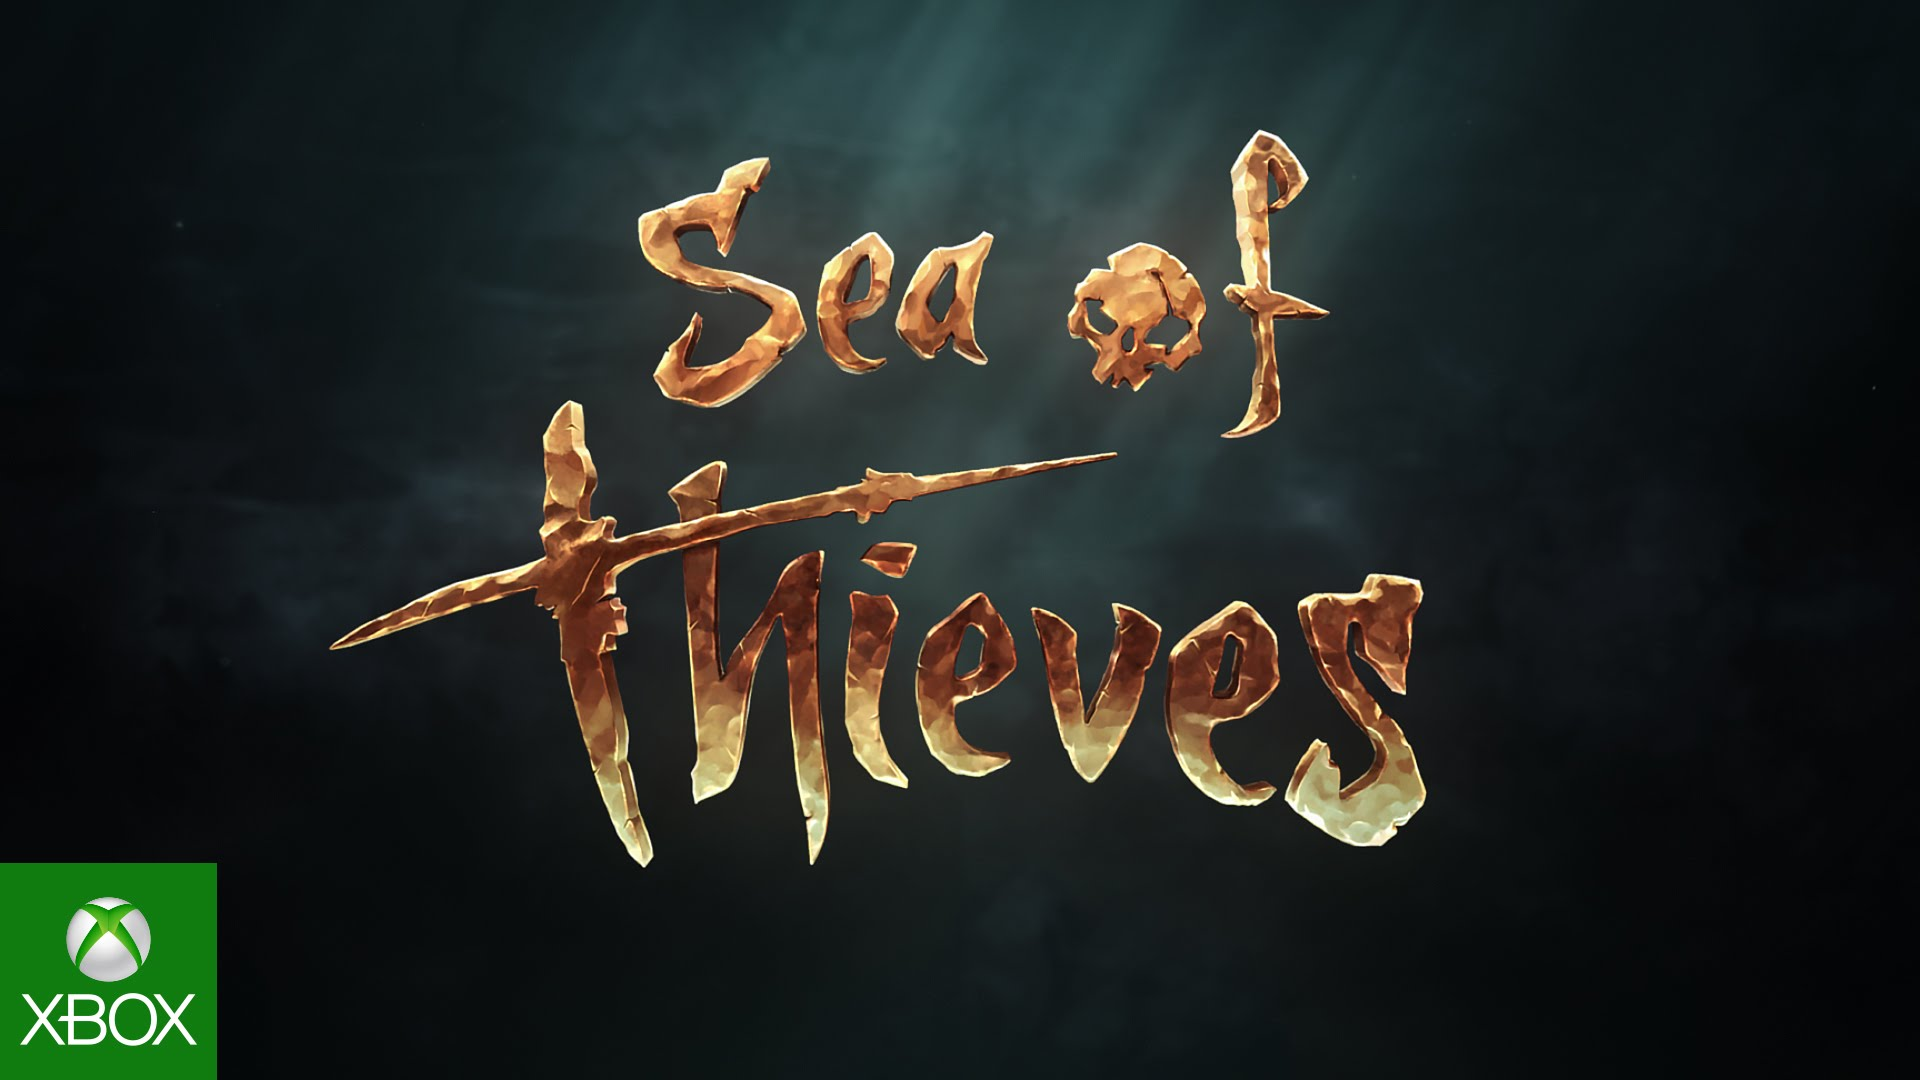 Sea of Thieves SDCC 2016